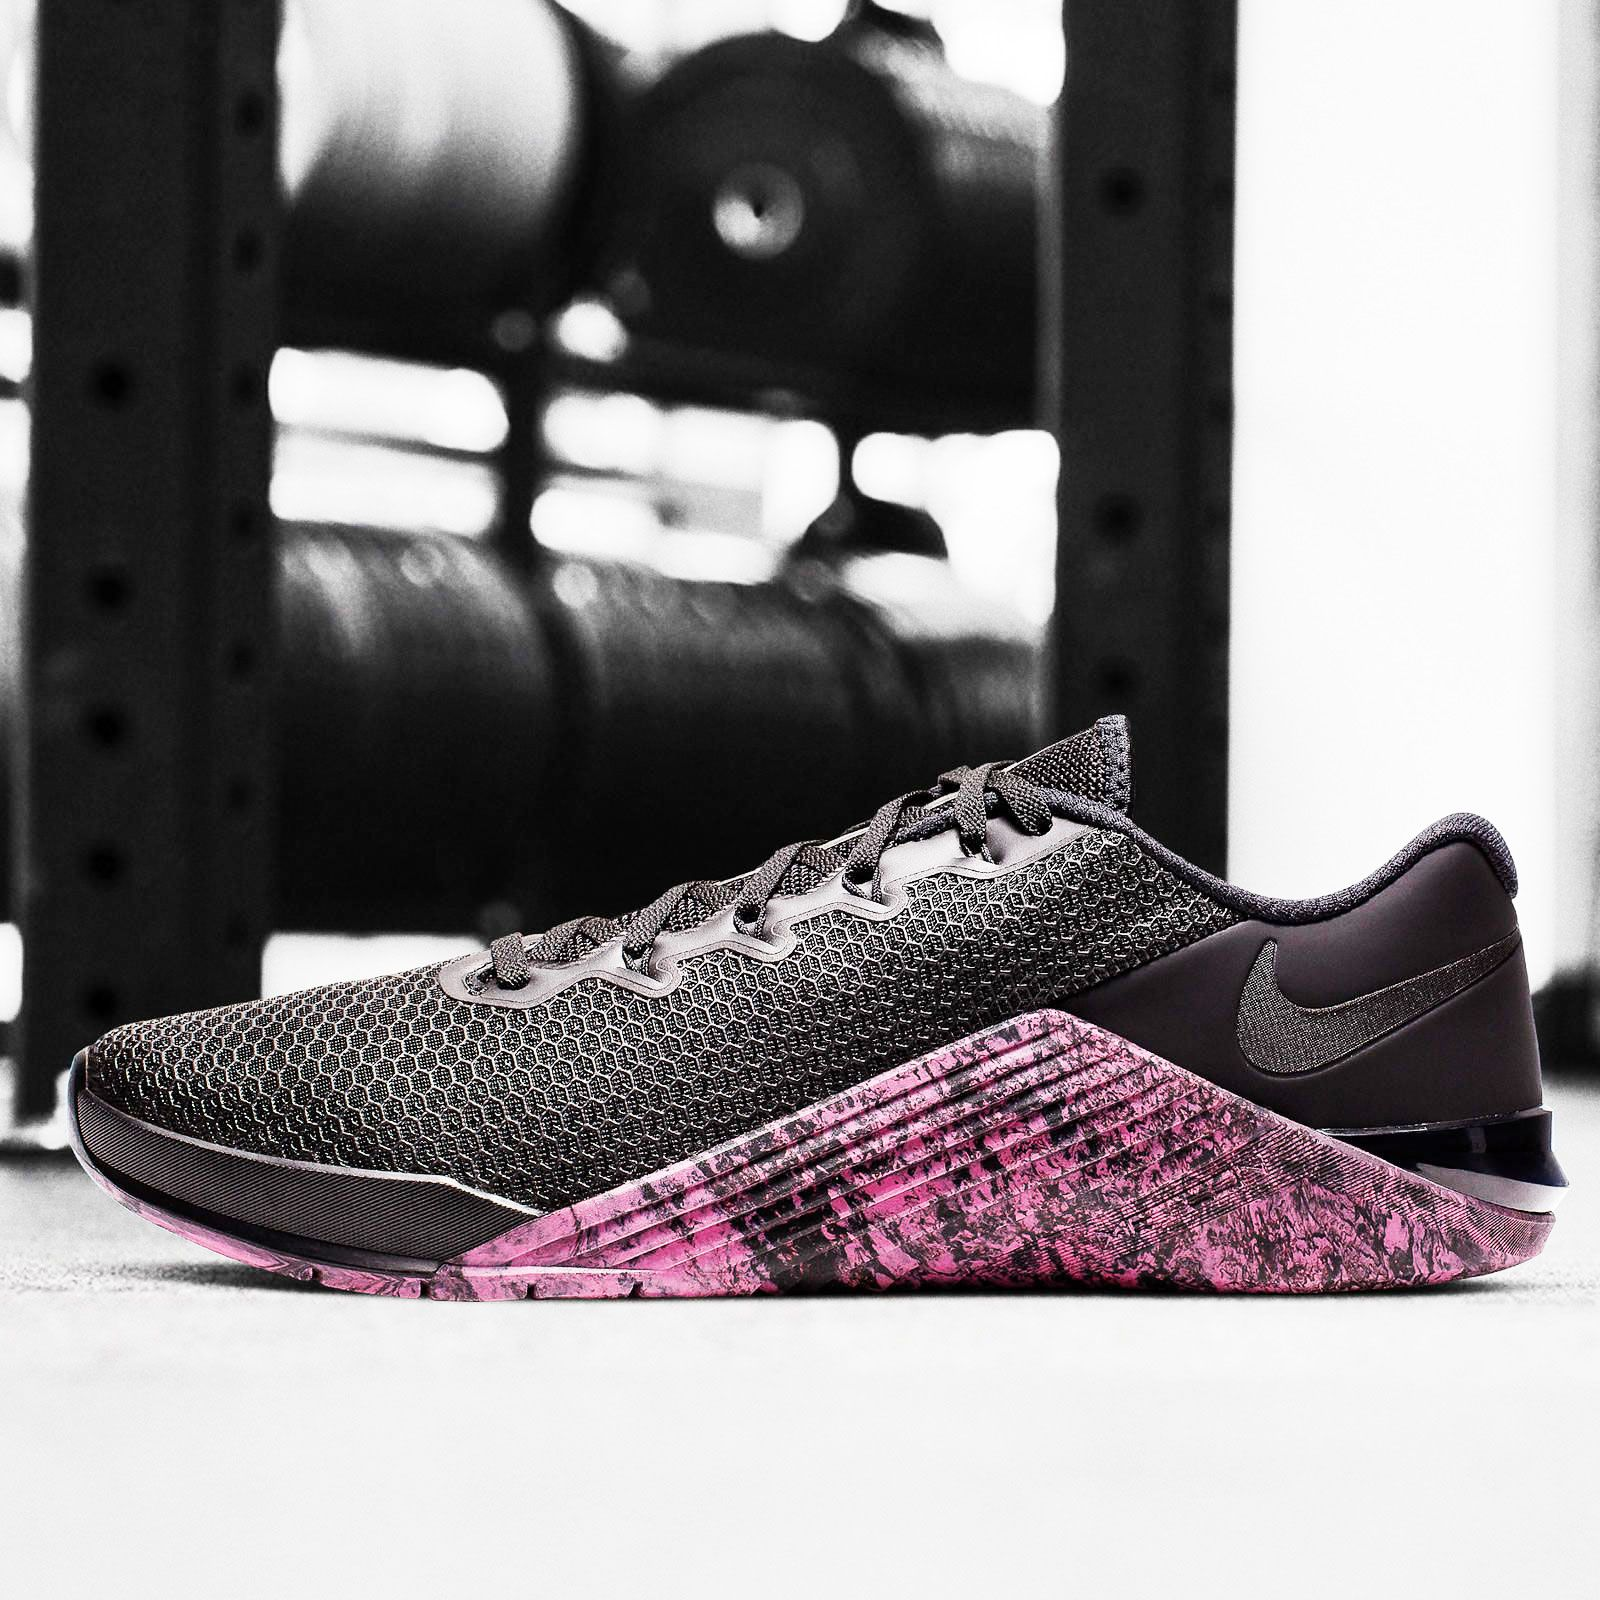 Nike Metcon 2 Review: The Ultimate CrossFit Shoe Men's Journal